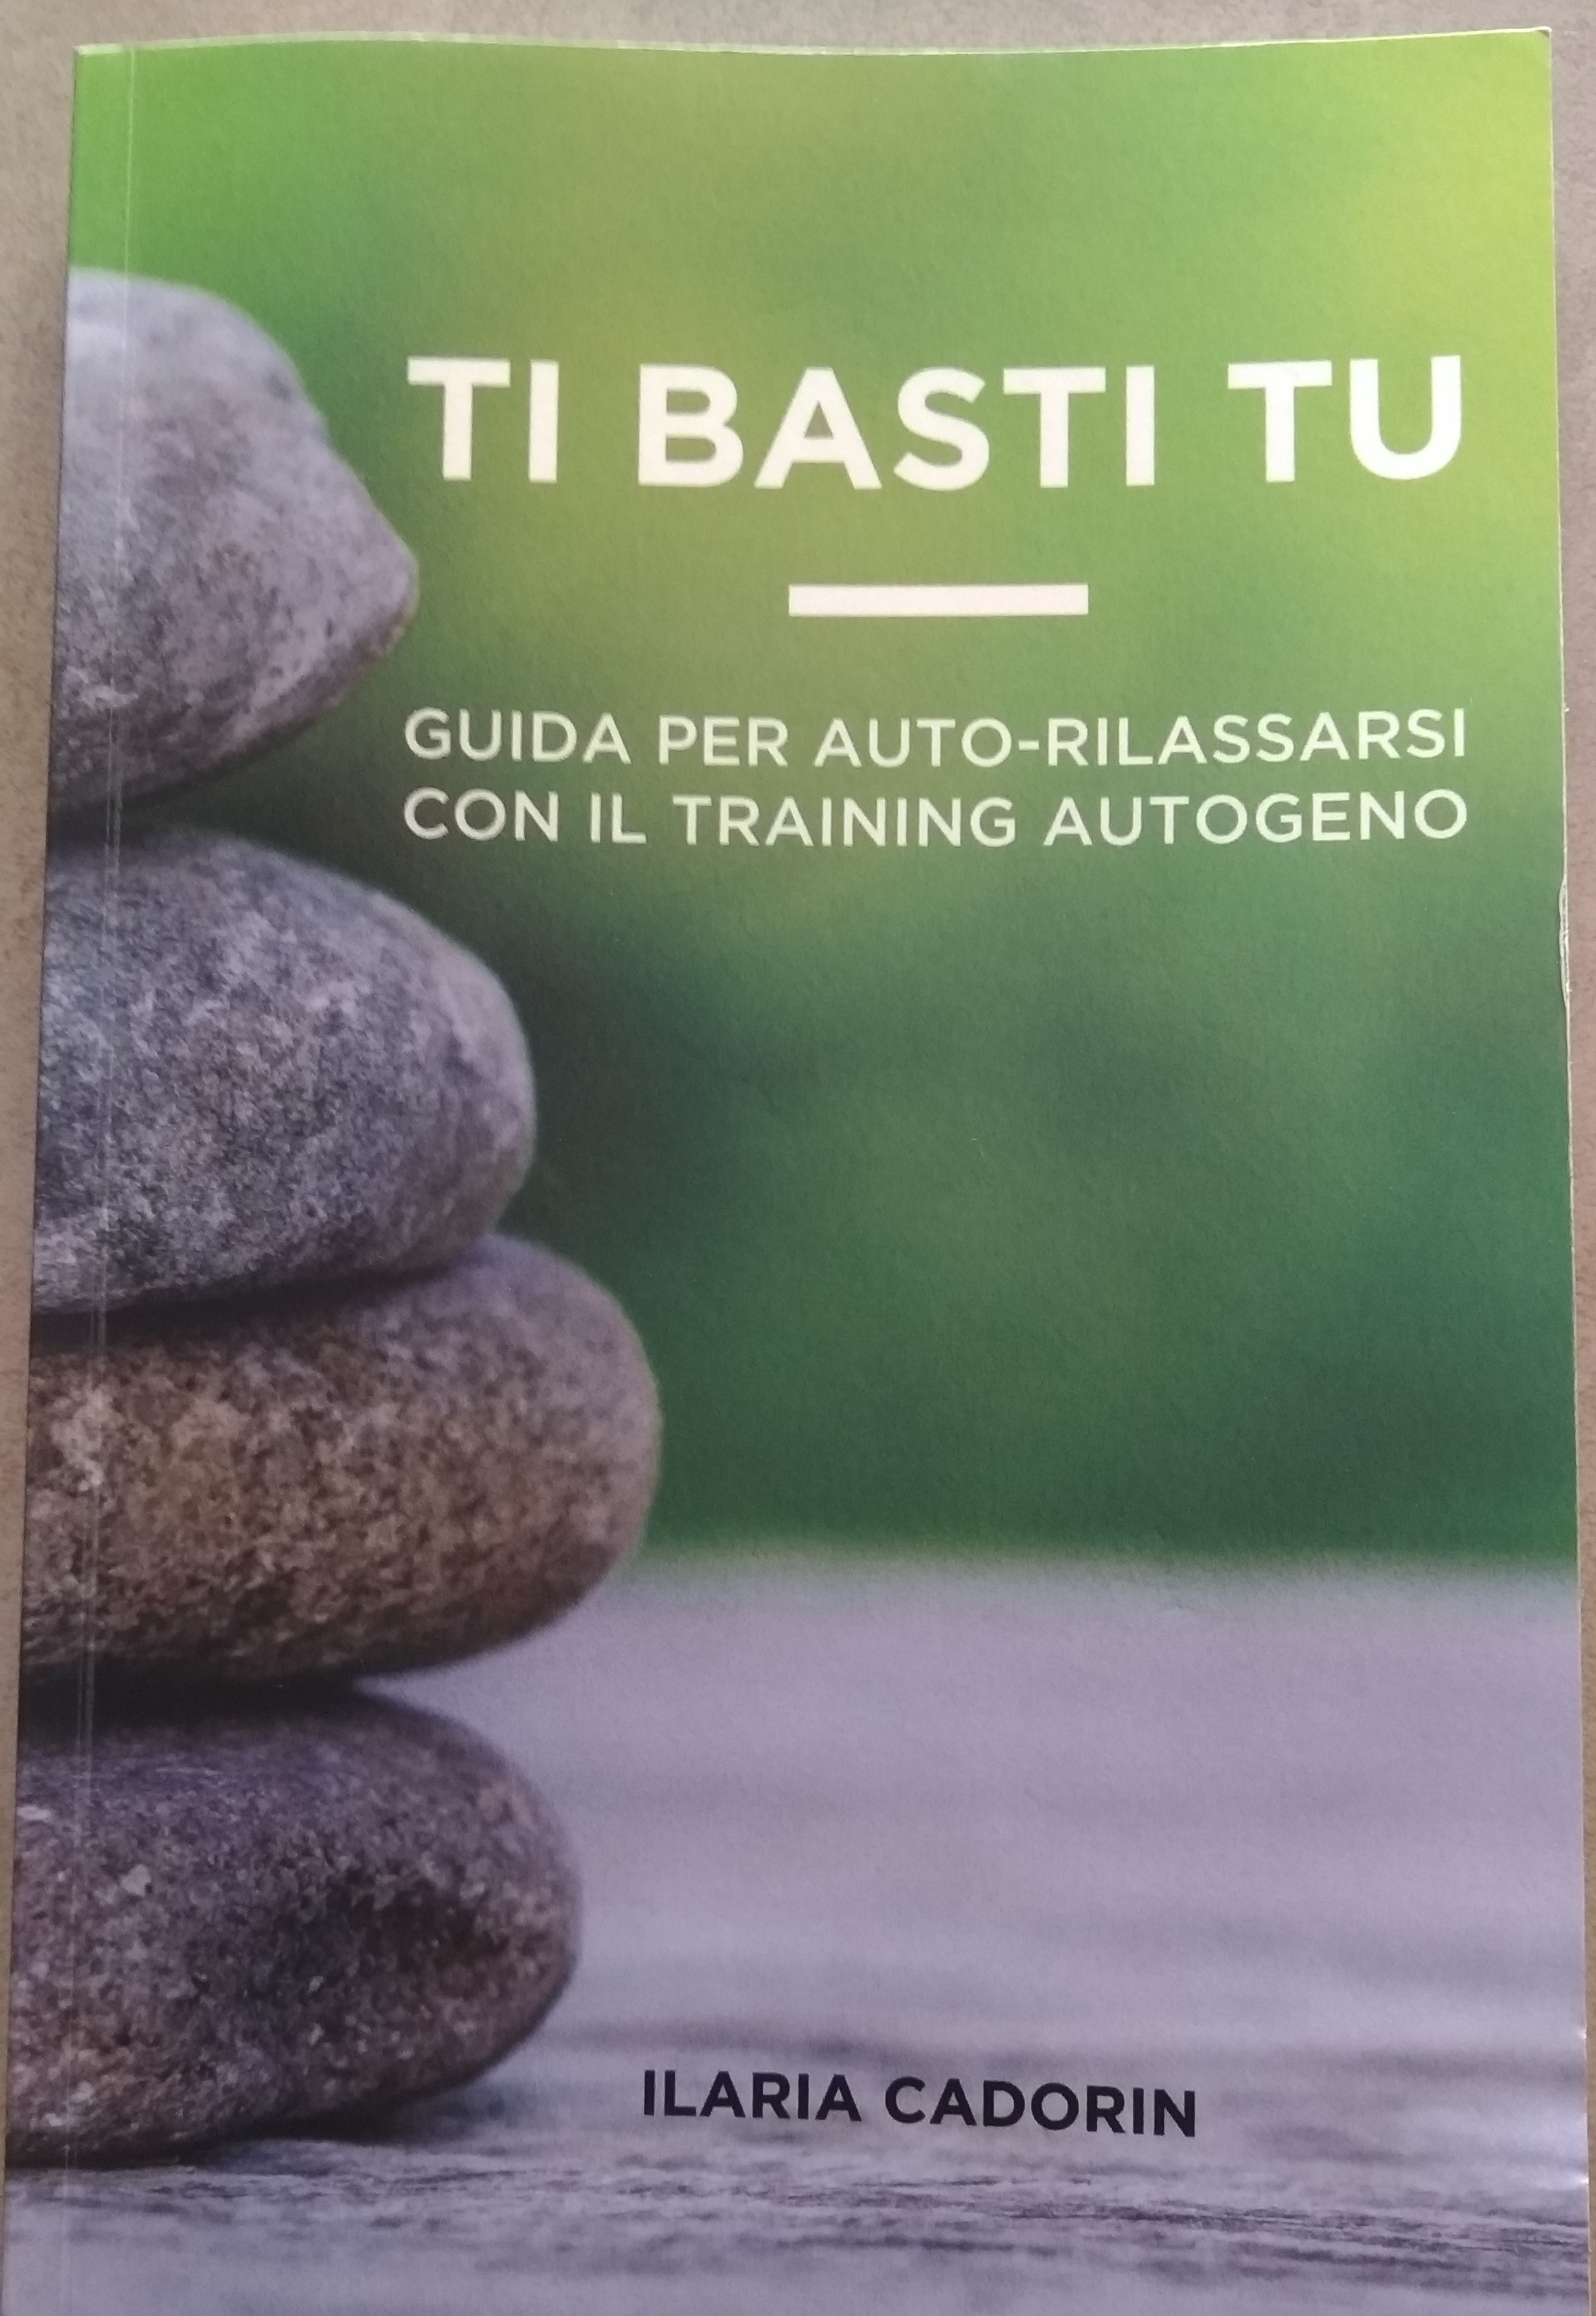 Ti Basti tu - training autogeno